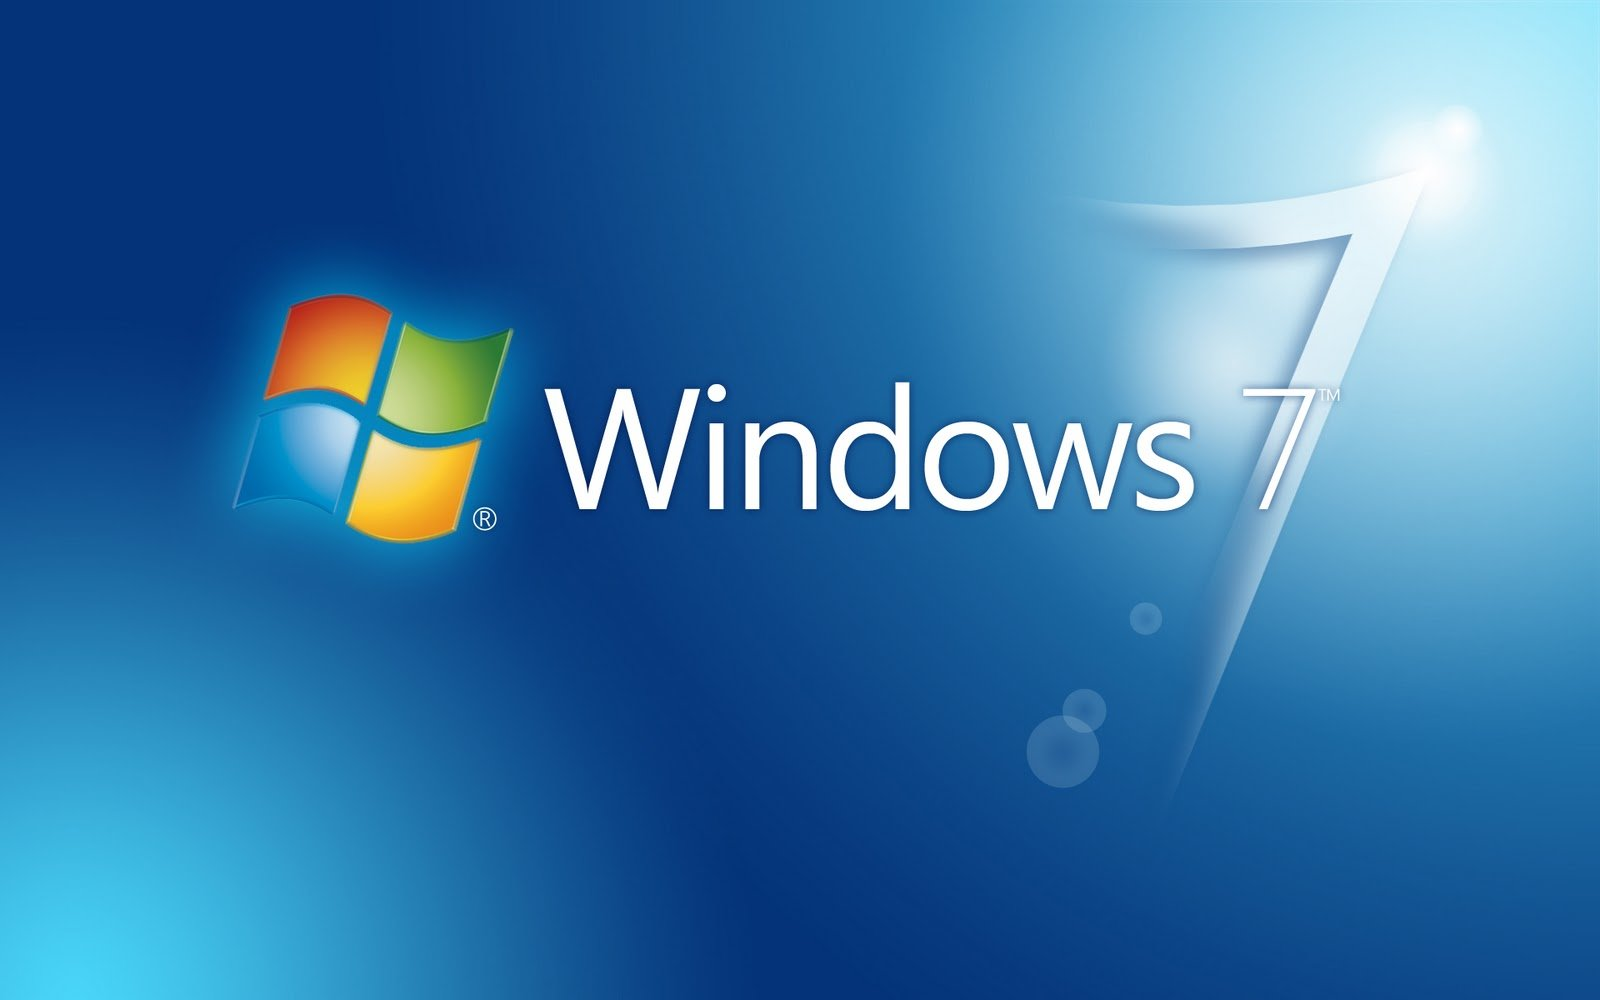 10 Reasons Why Windows 7 is Still No.1